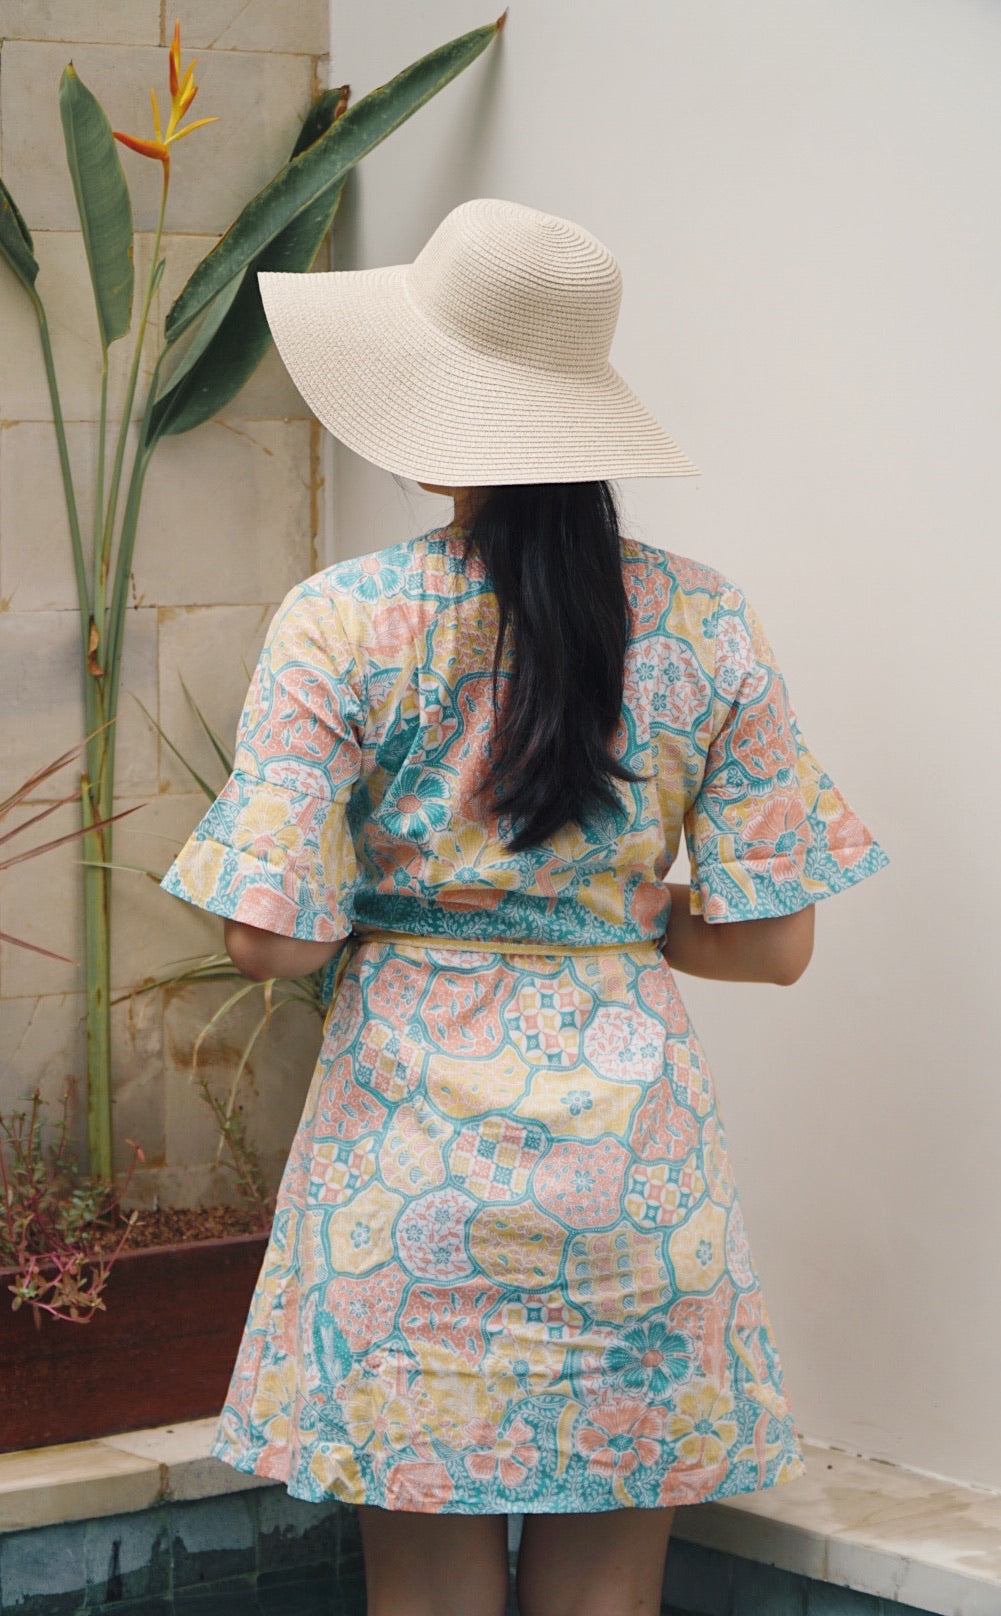 Magnolia Batik Wrap Dress in Pastel Islands